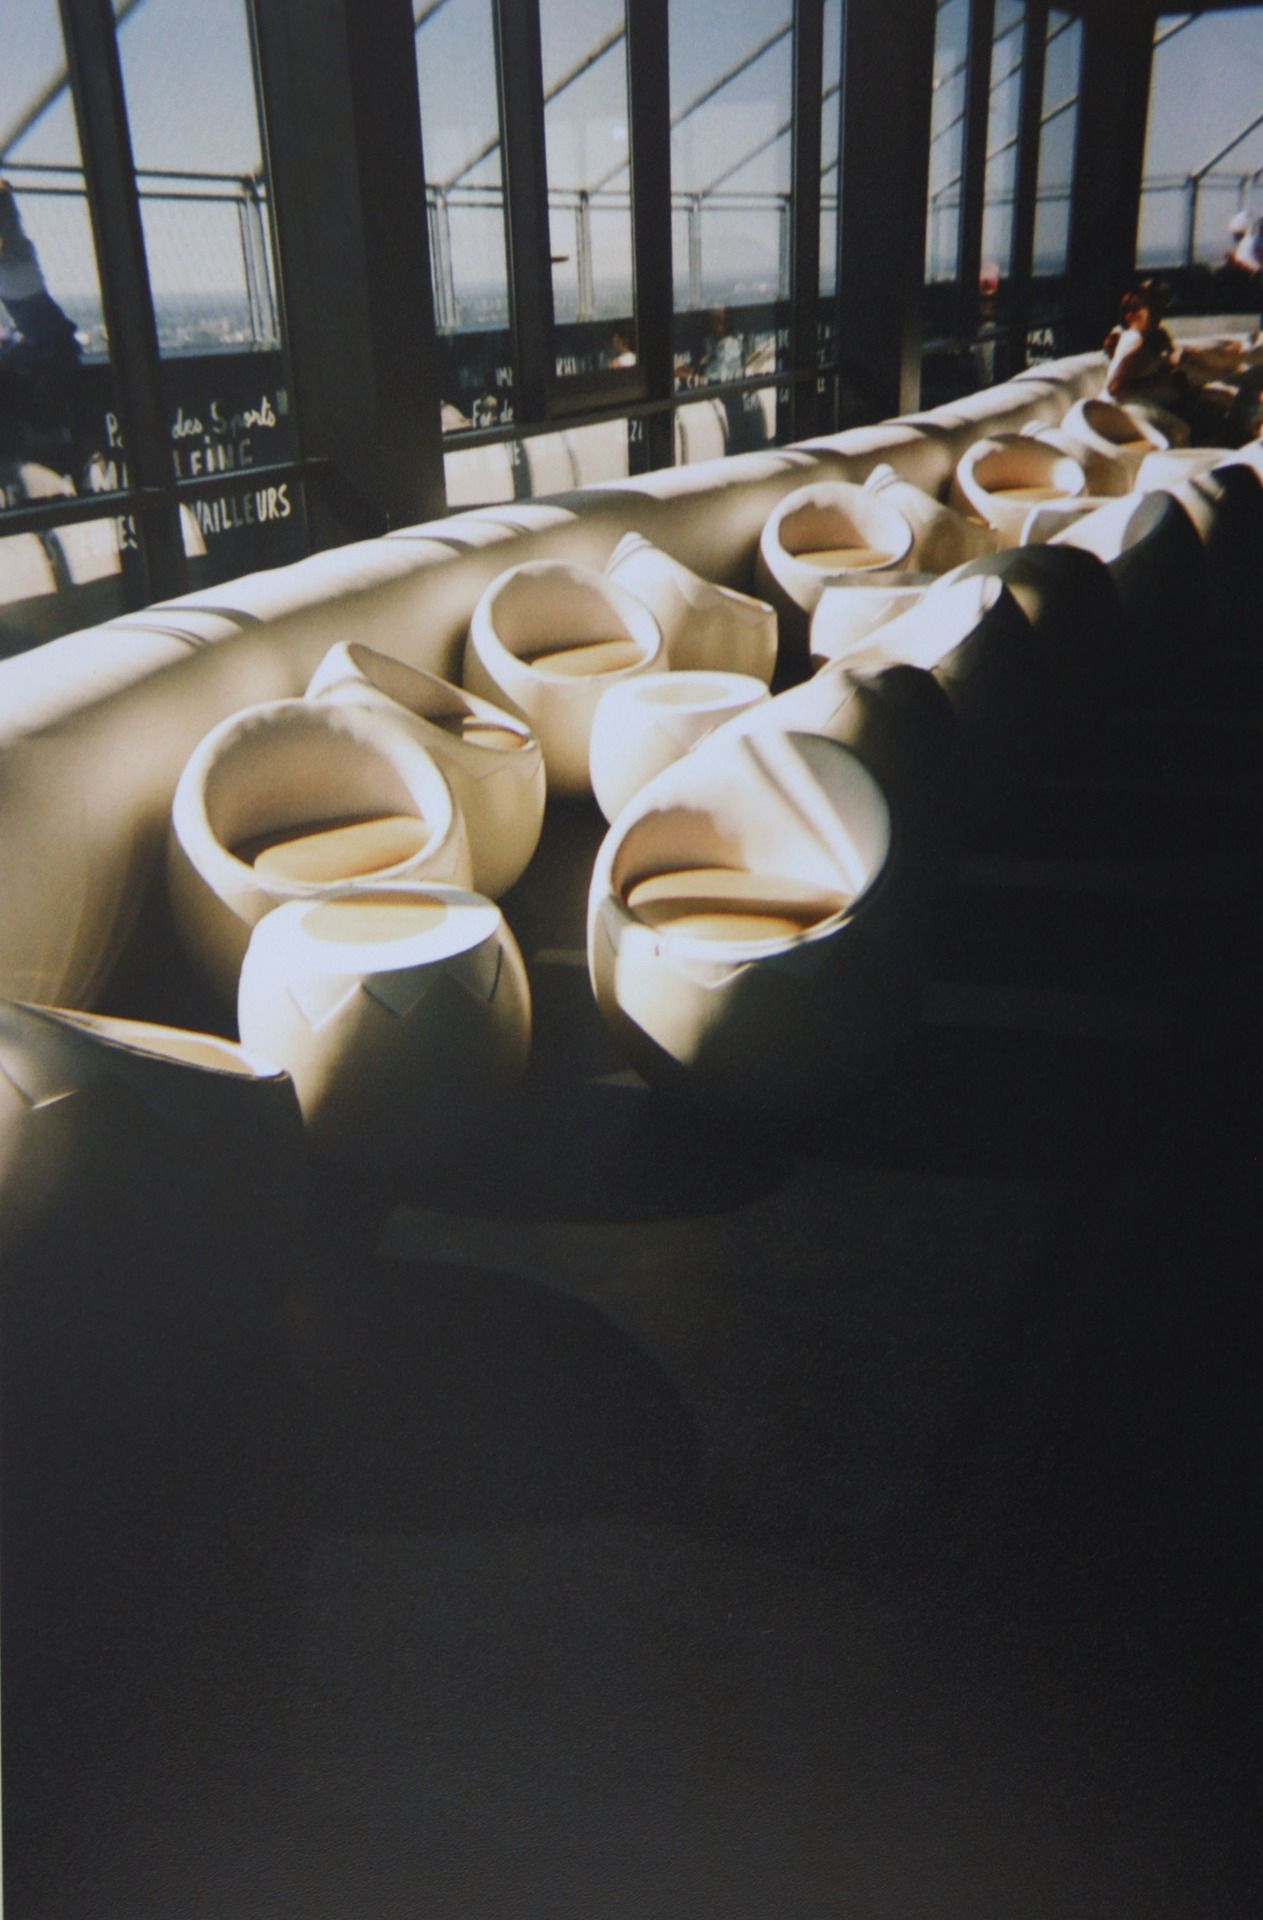 Photo by Laura Vandenbergh  Nantes, France 2013, egg chairs, analogue photography, interior